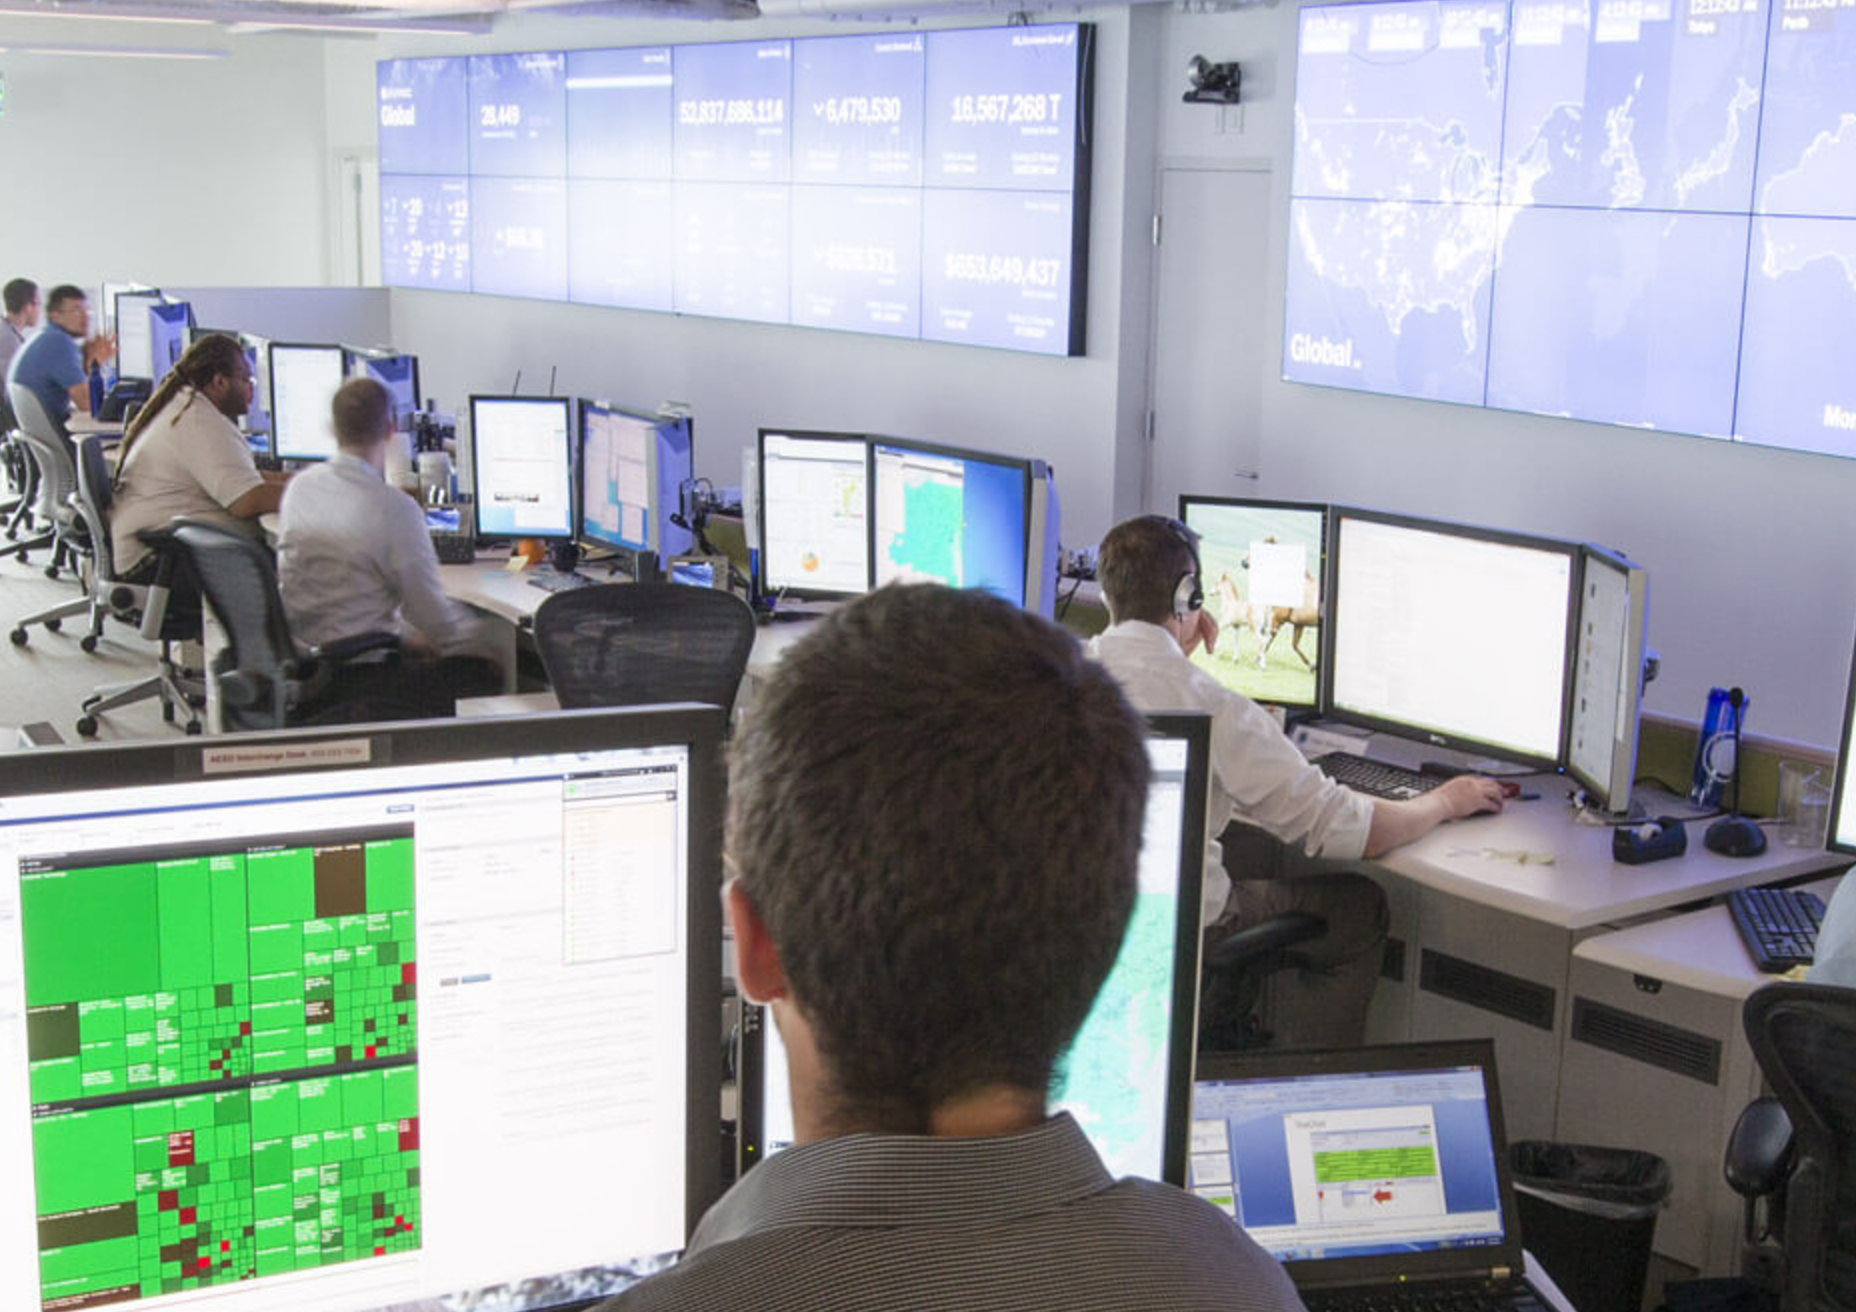 Enel to Buy EnerNOC for $250M, in Bid for Demand Response and Energy Software Market Share